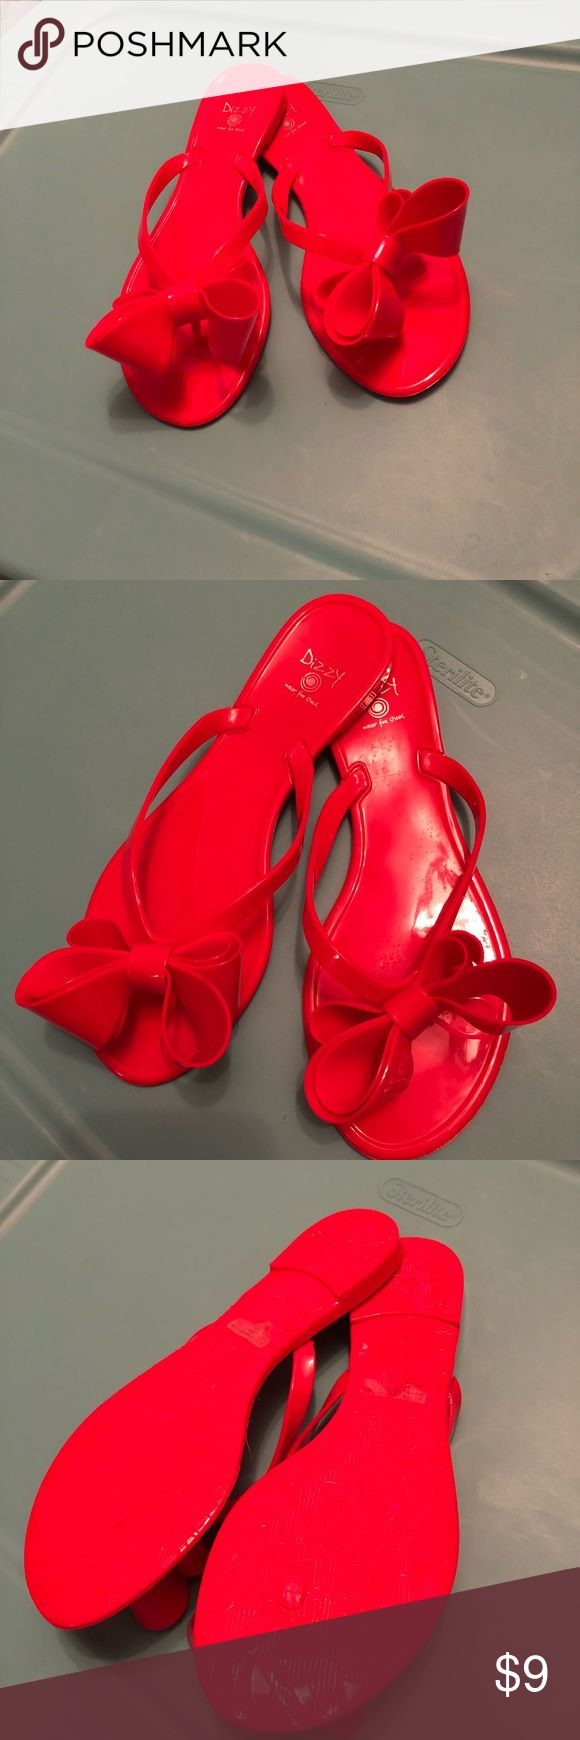 Red Bow Flip Flops! Brand New! Size Small (7)  Jelly like sandals Shoes Sandals